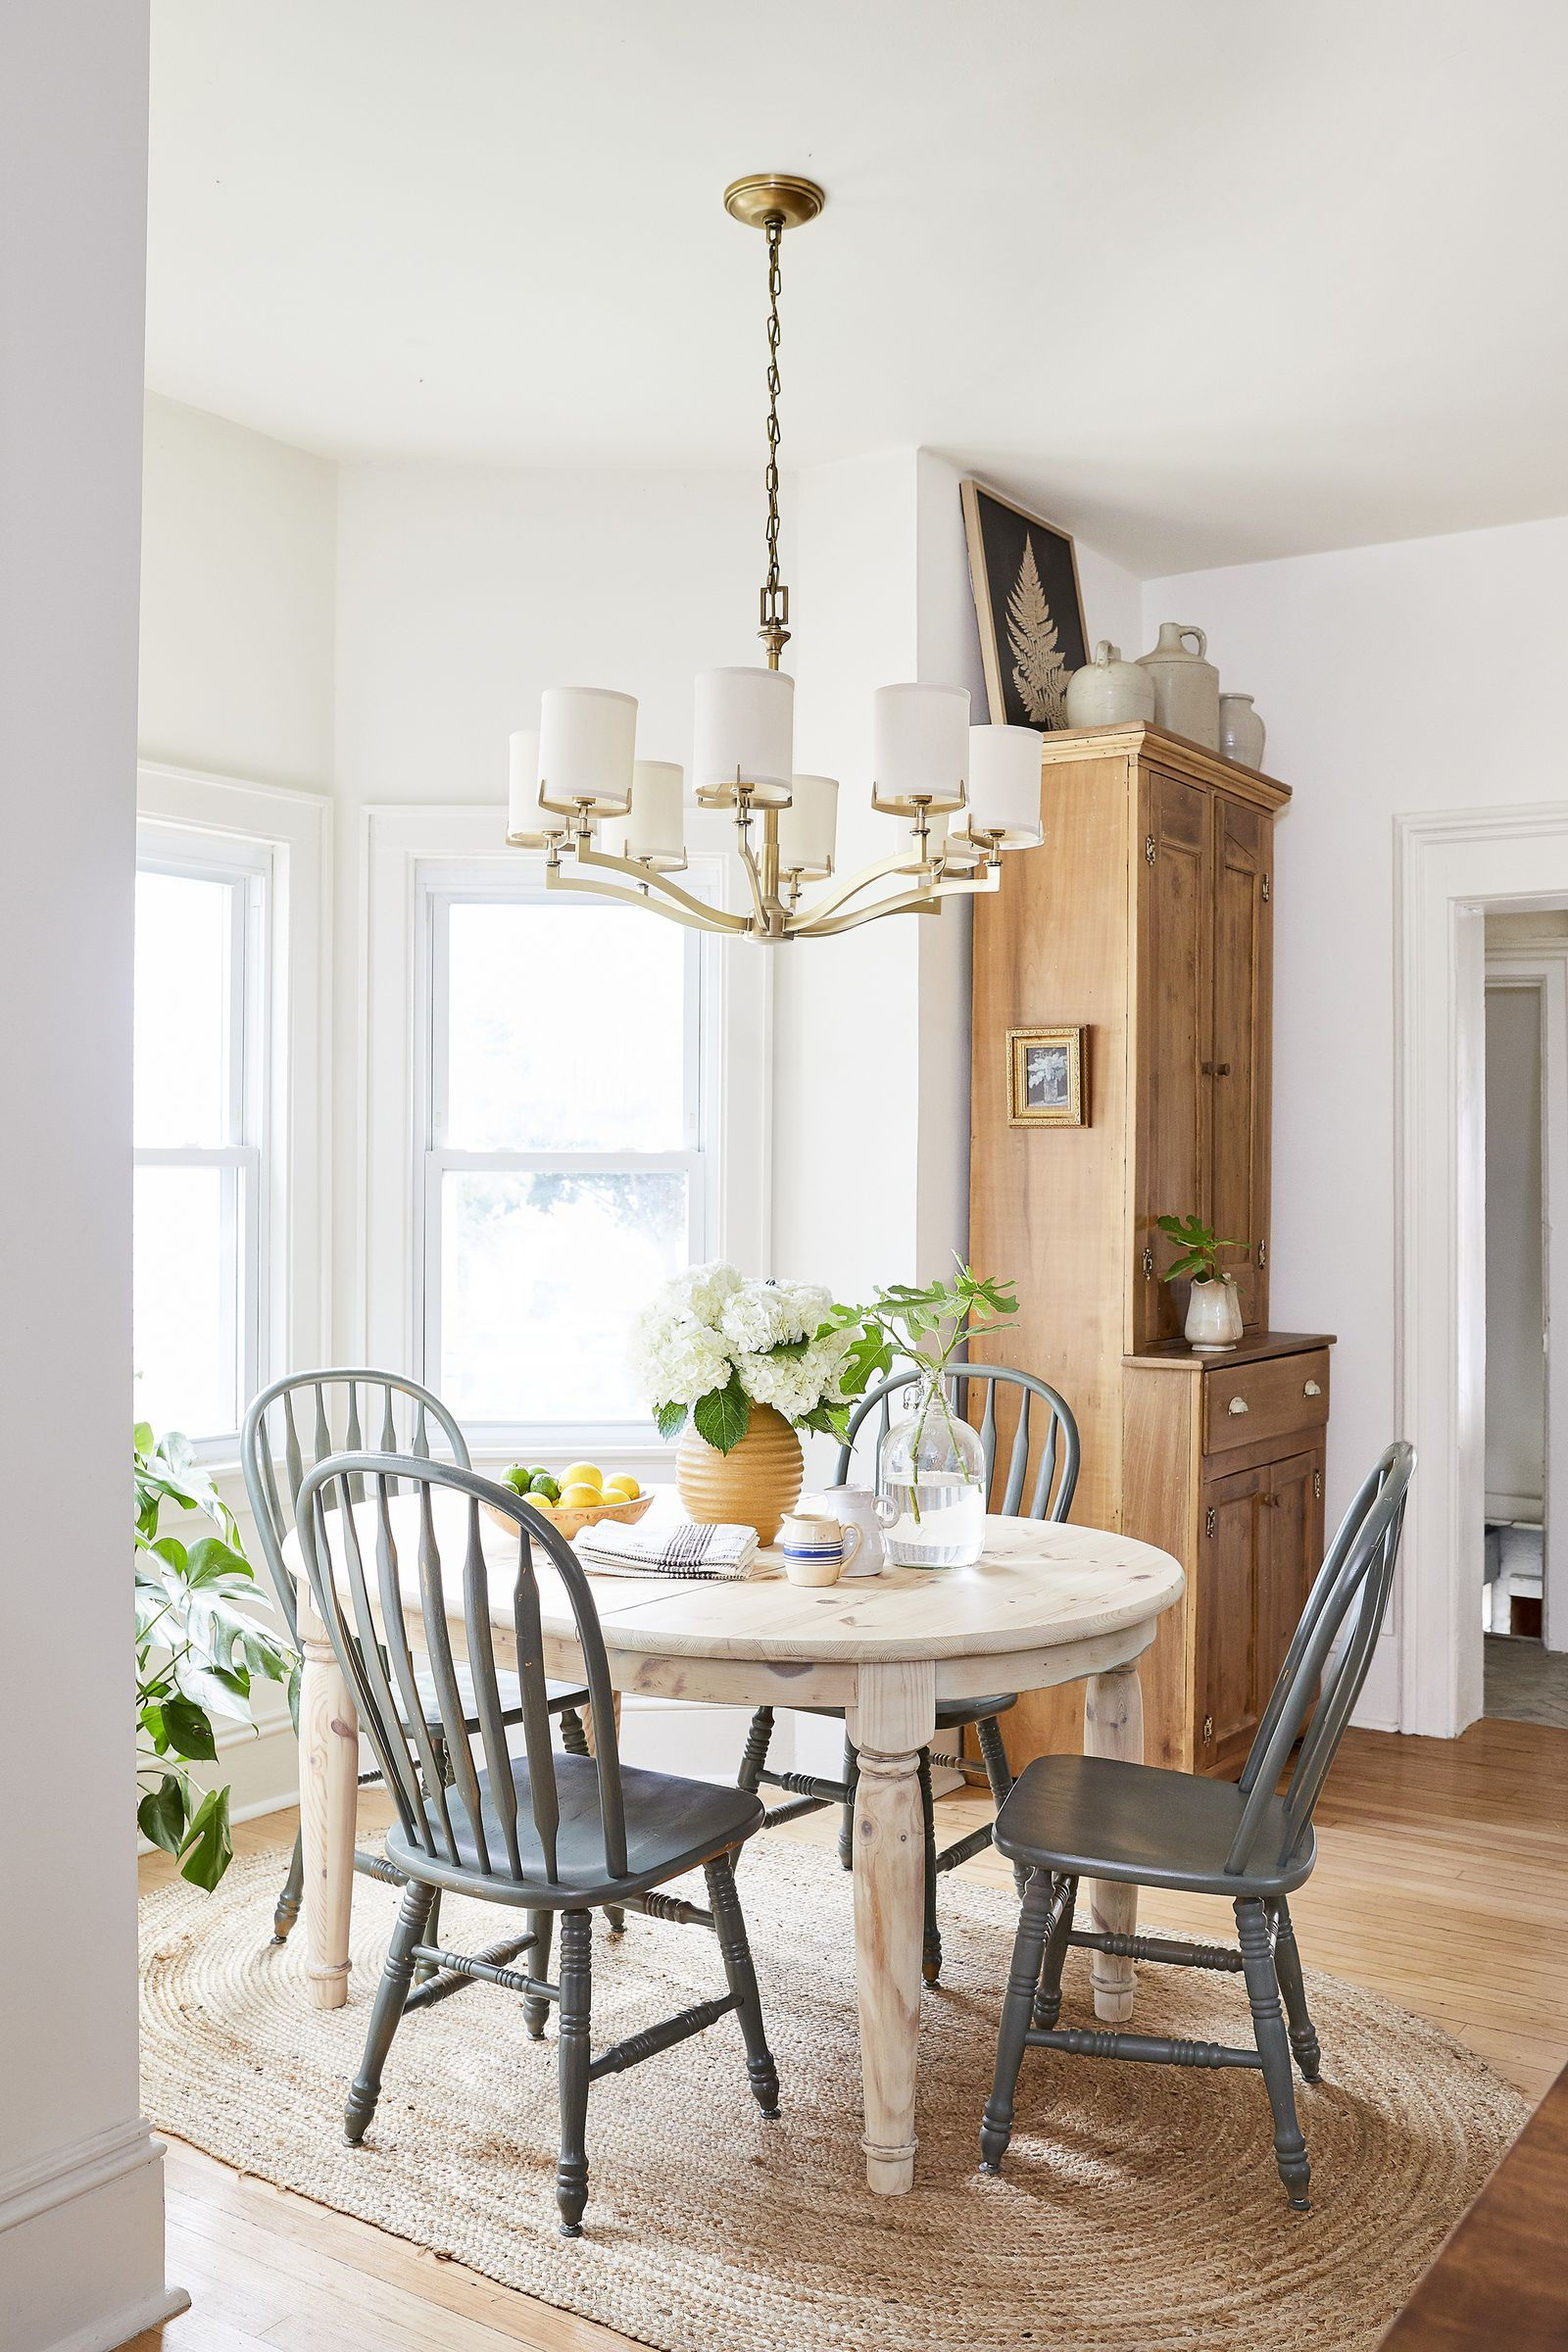 Decorate On A Budget With These Creative Style Tips And Tricks